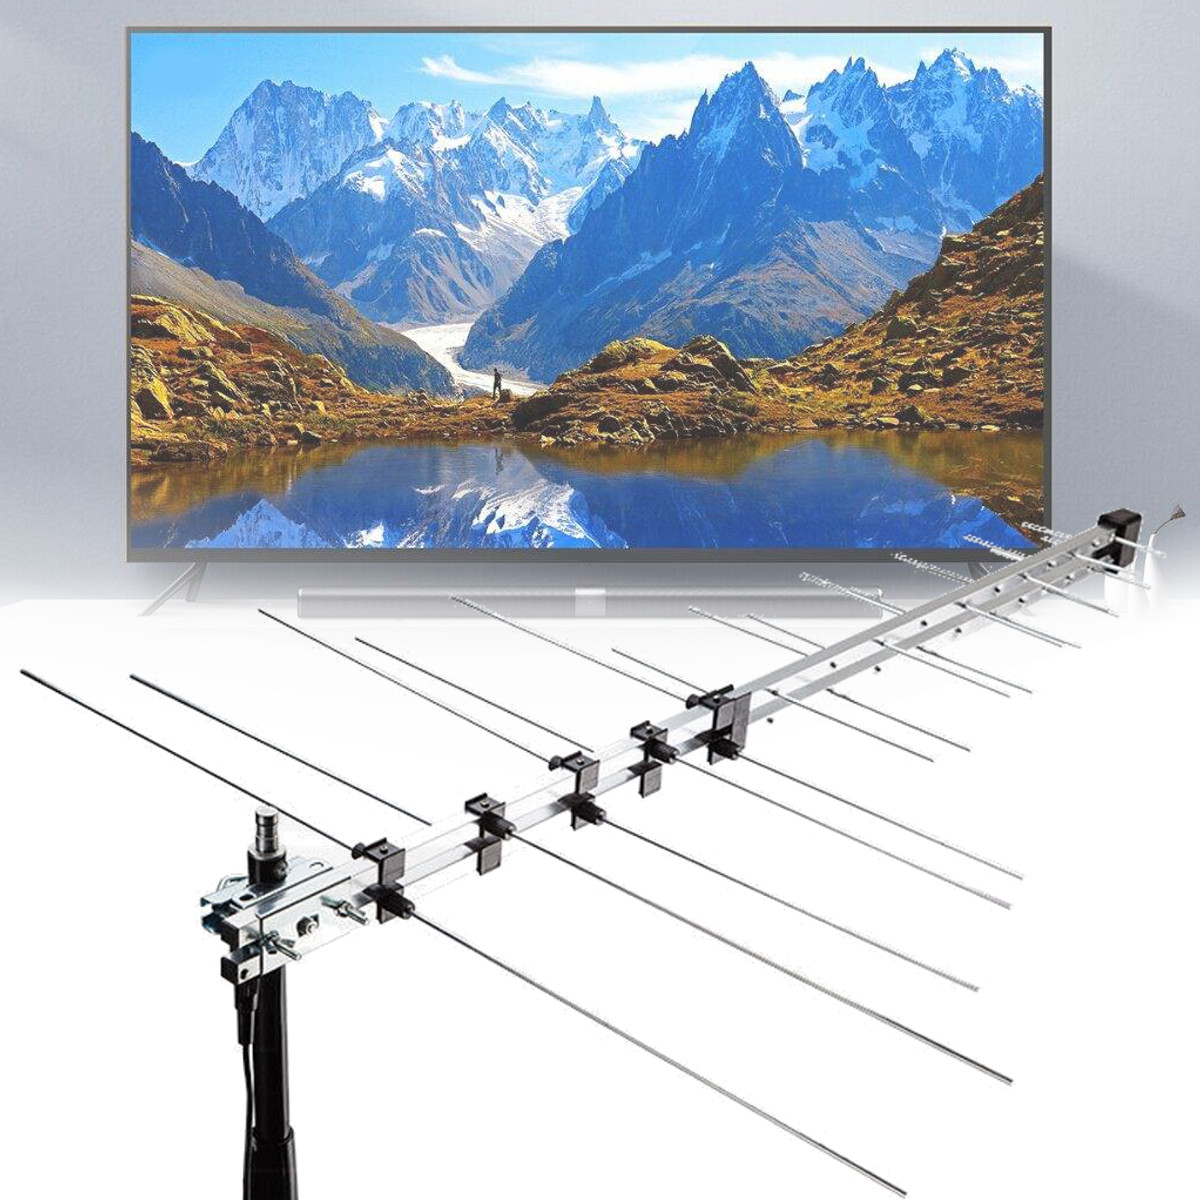 111.5cm 32 Element TV Antenna Outdoor Digital Aerial UHF VHF HD FM Amplified 8.5db DVB-T Signal Booster TV Receiver Accessories